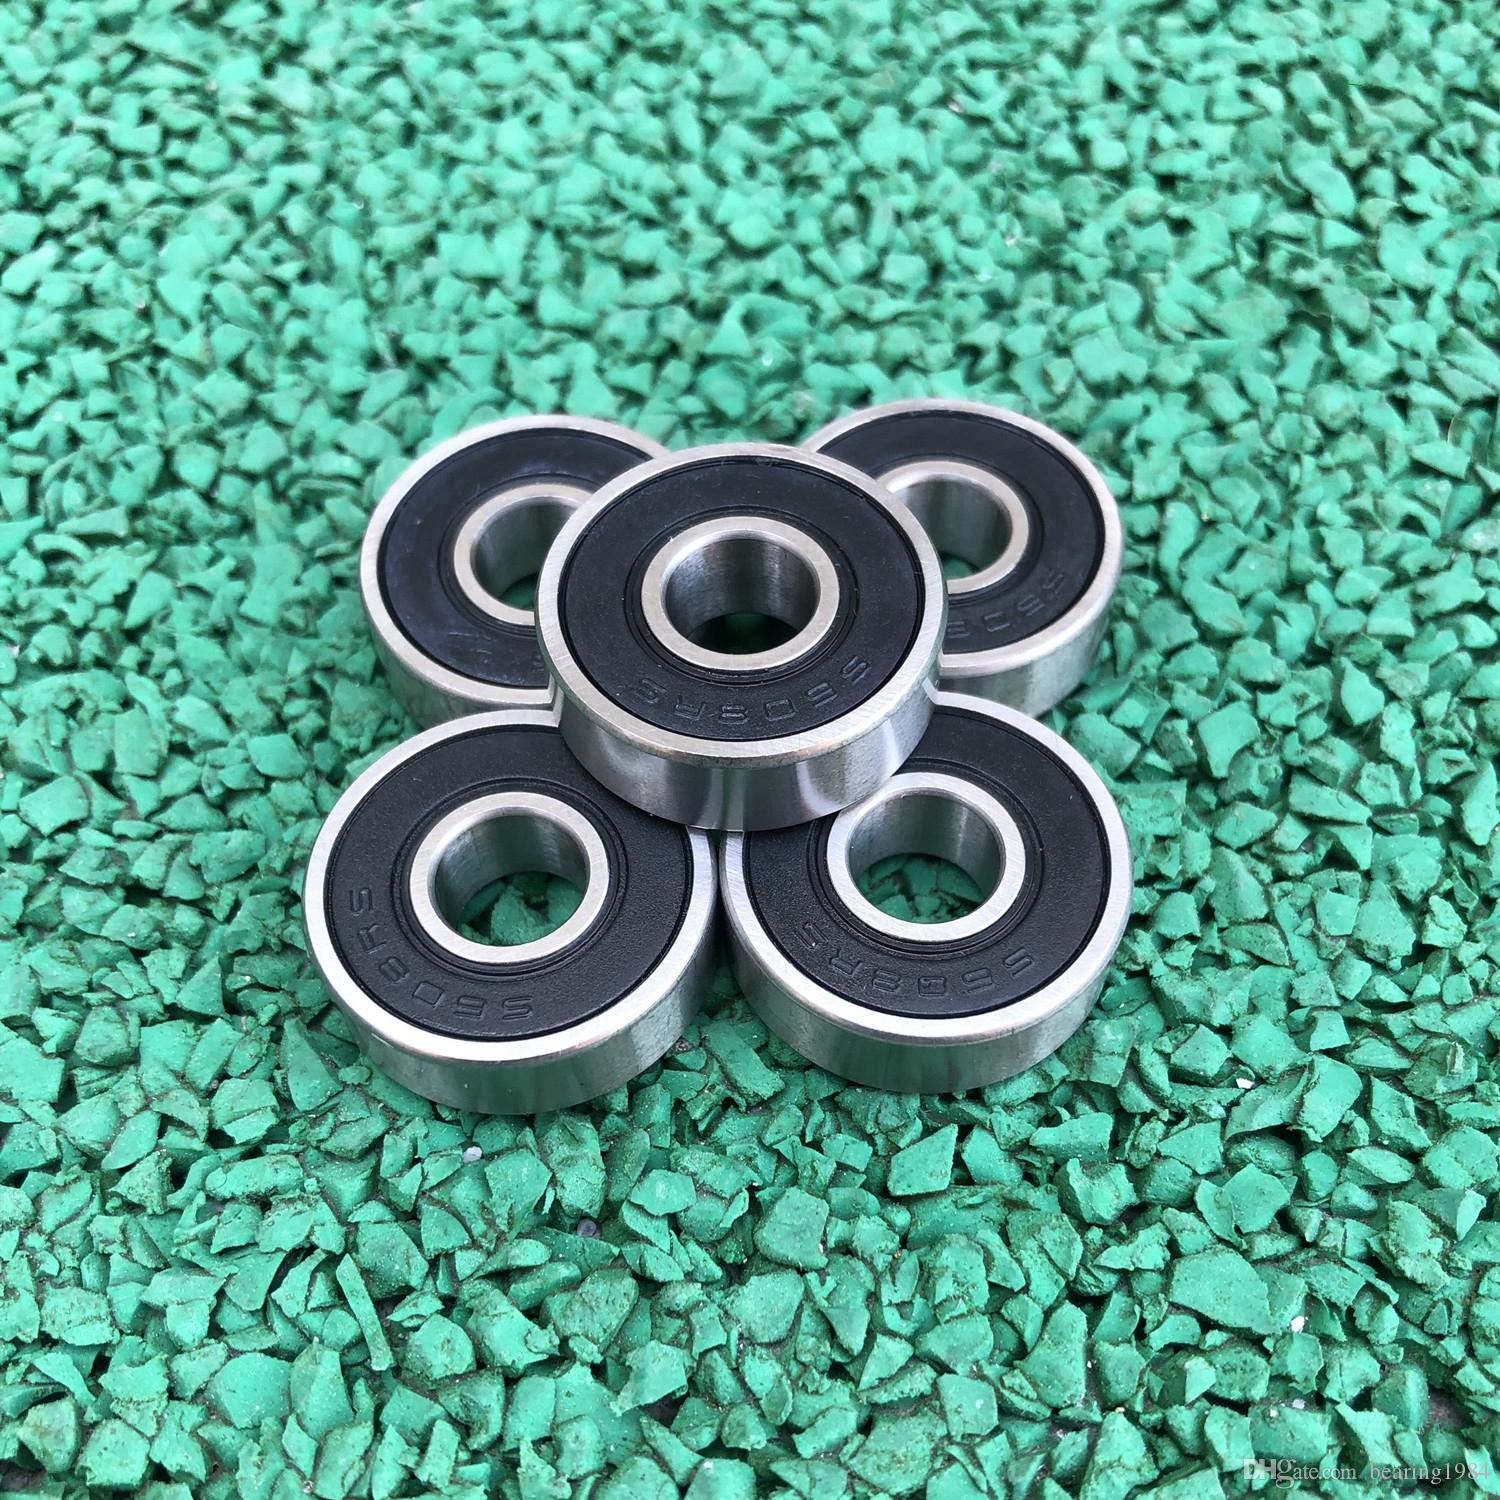 50pcs/lot S608-2RS S608RS S608 2RS RS ABEC-5 8x22x7mm skates drift board stainless steel Deep Groove Ball bearing shielded 8*22*7 608 608-RS